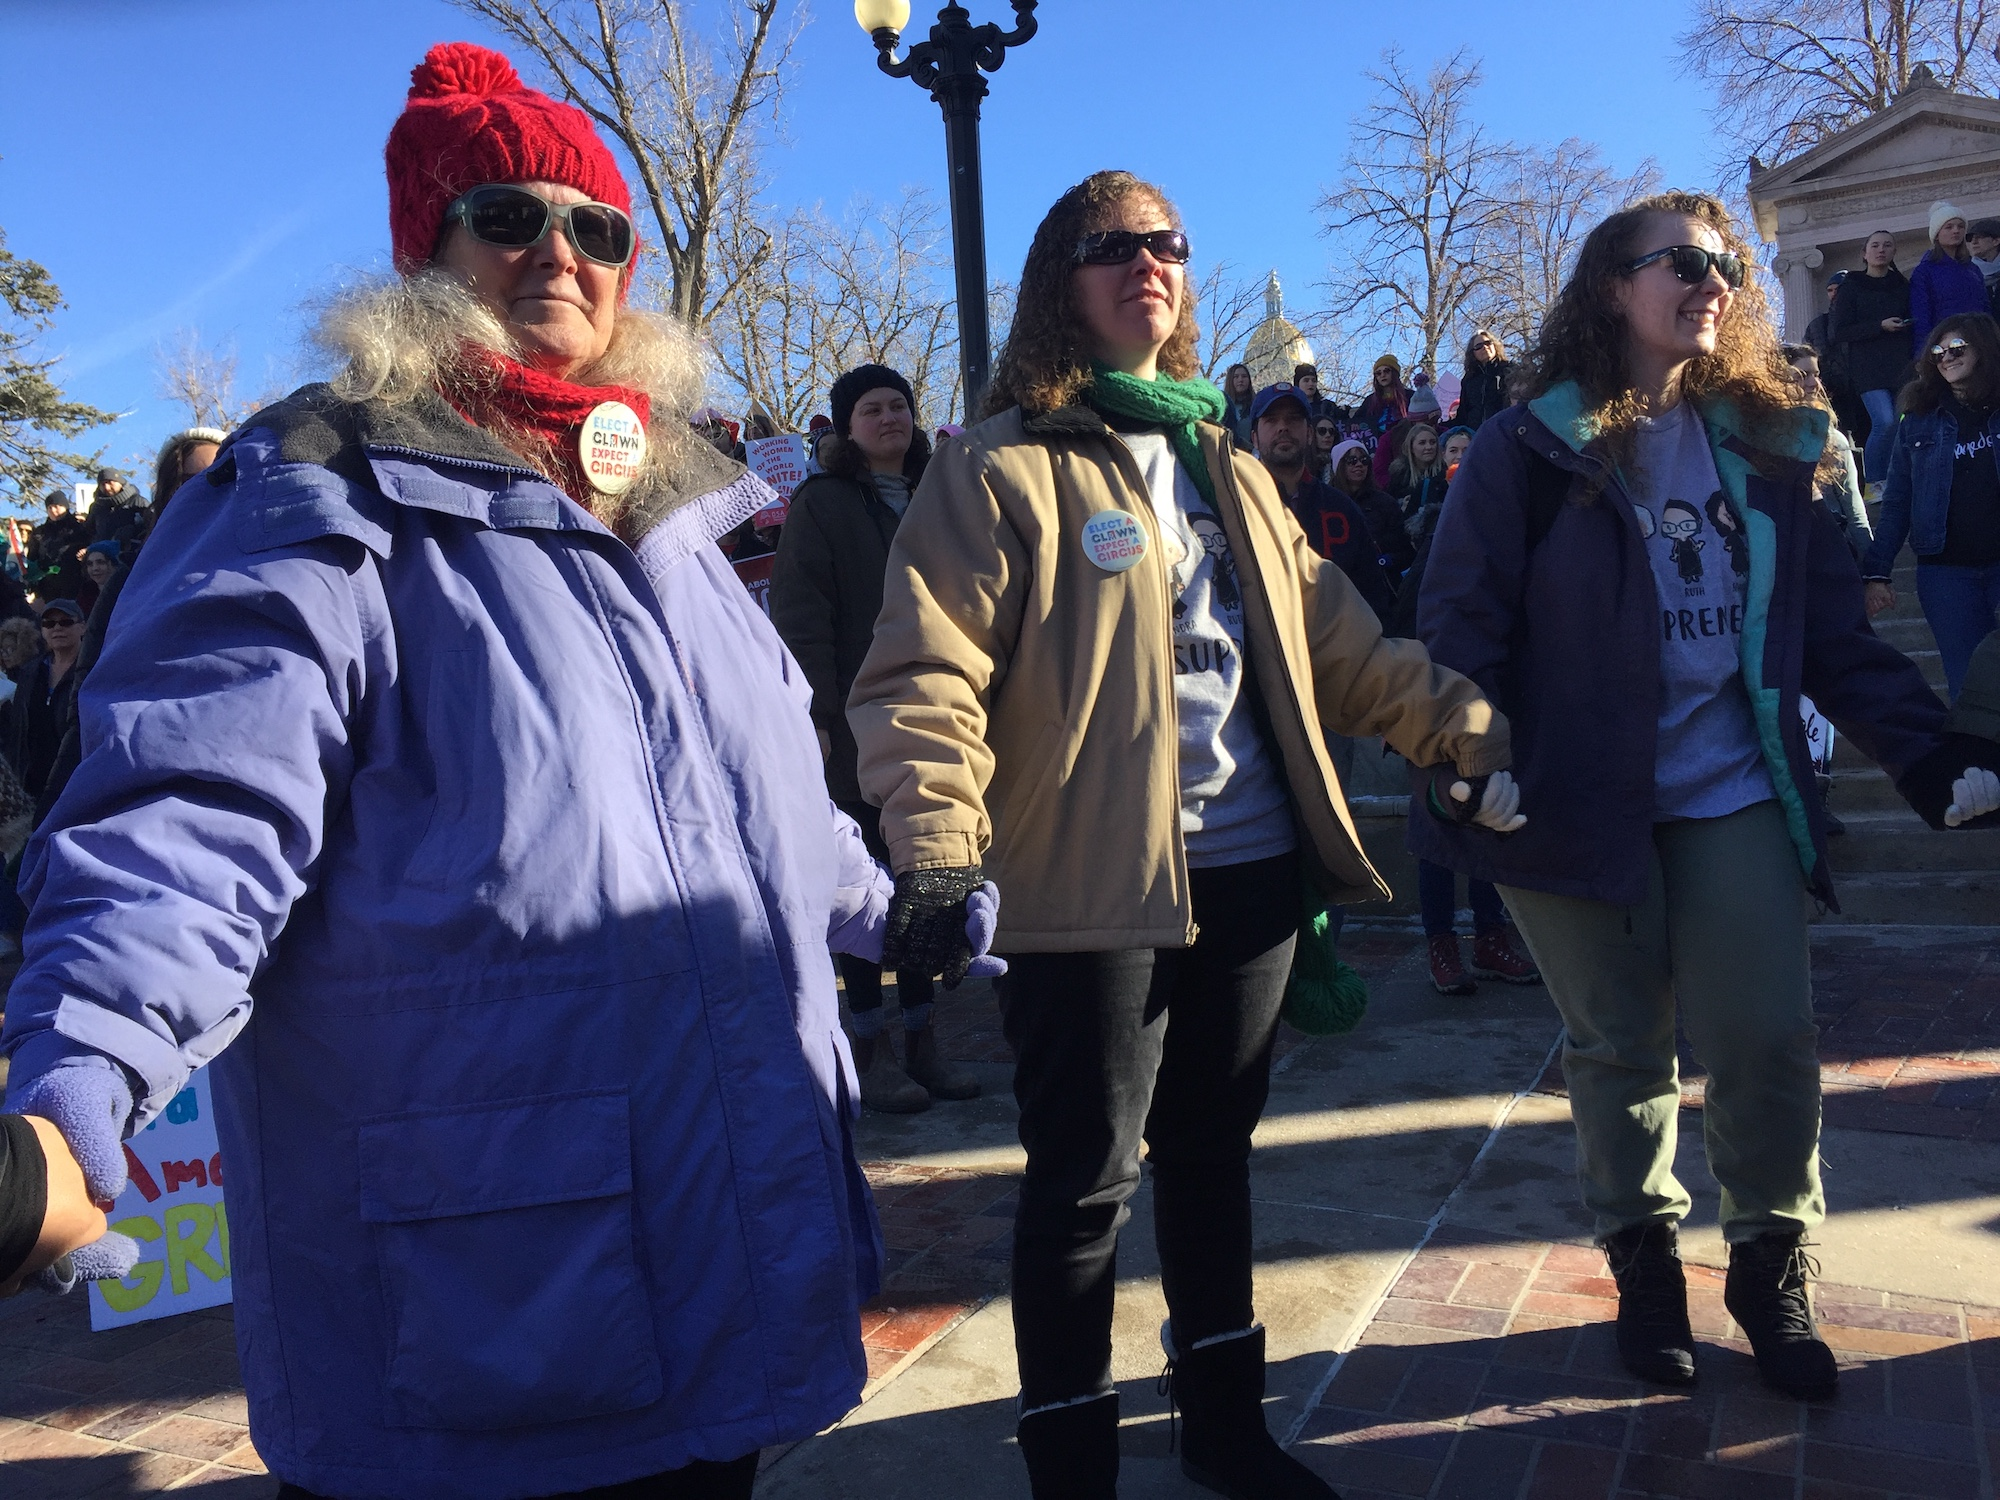 """<p>Three women hold hands at<span style=""""color: rgb(64, 69, 64);"""">the</span>Womxn's<span style=""""color: rgb(64, 69, 64);"""">March Denver on Jan. 19, 2019 in Civic Center Park in Denver</span>to demonstrate the march's theme of unity. A march organizer had asked everyone to join hands with the people next to them.</p>"""